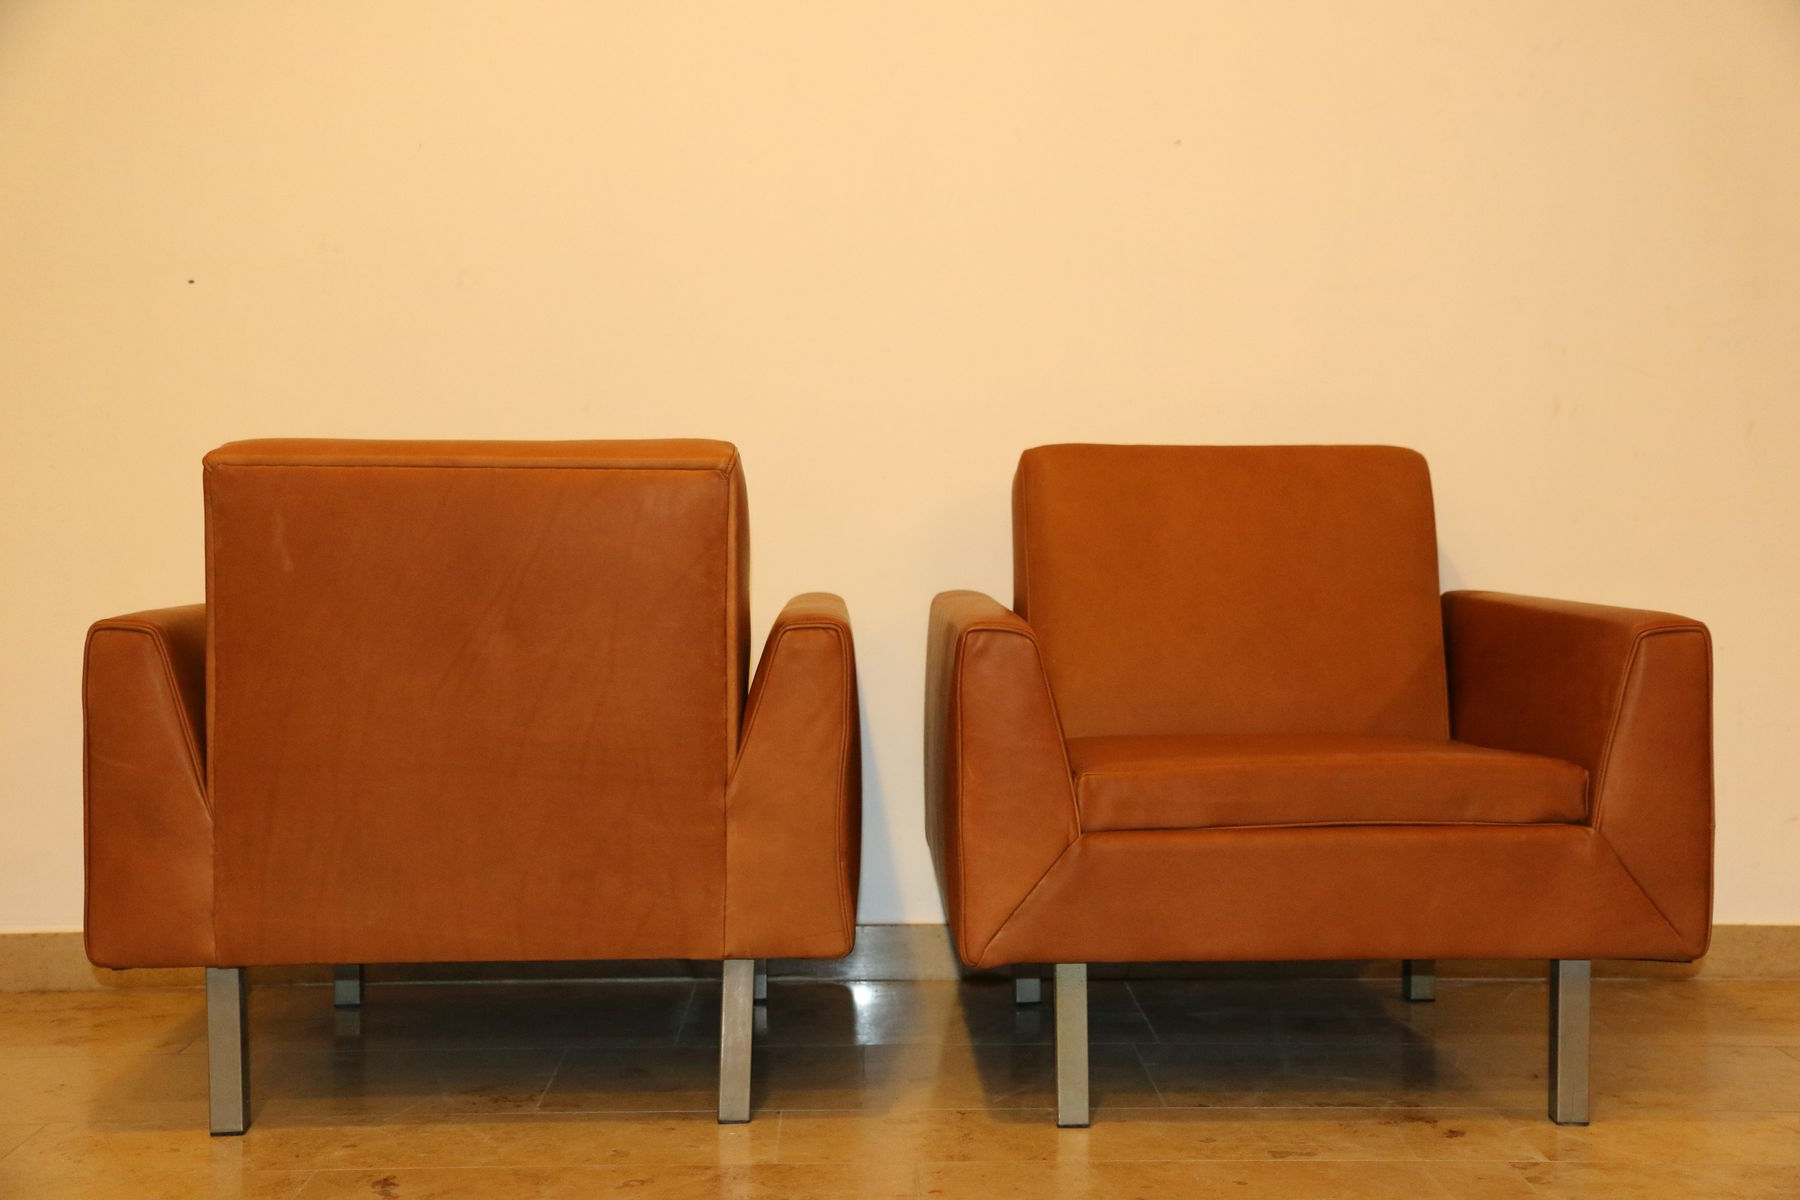 Latest 410 Club Chairstheo Ruth For Artifort, 1956, Set Of 2 For Sale Intended For Theo Ii Swivel Chairs (View 3 of 20)